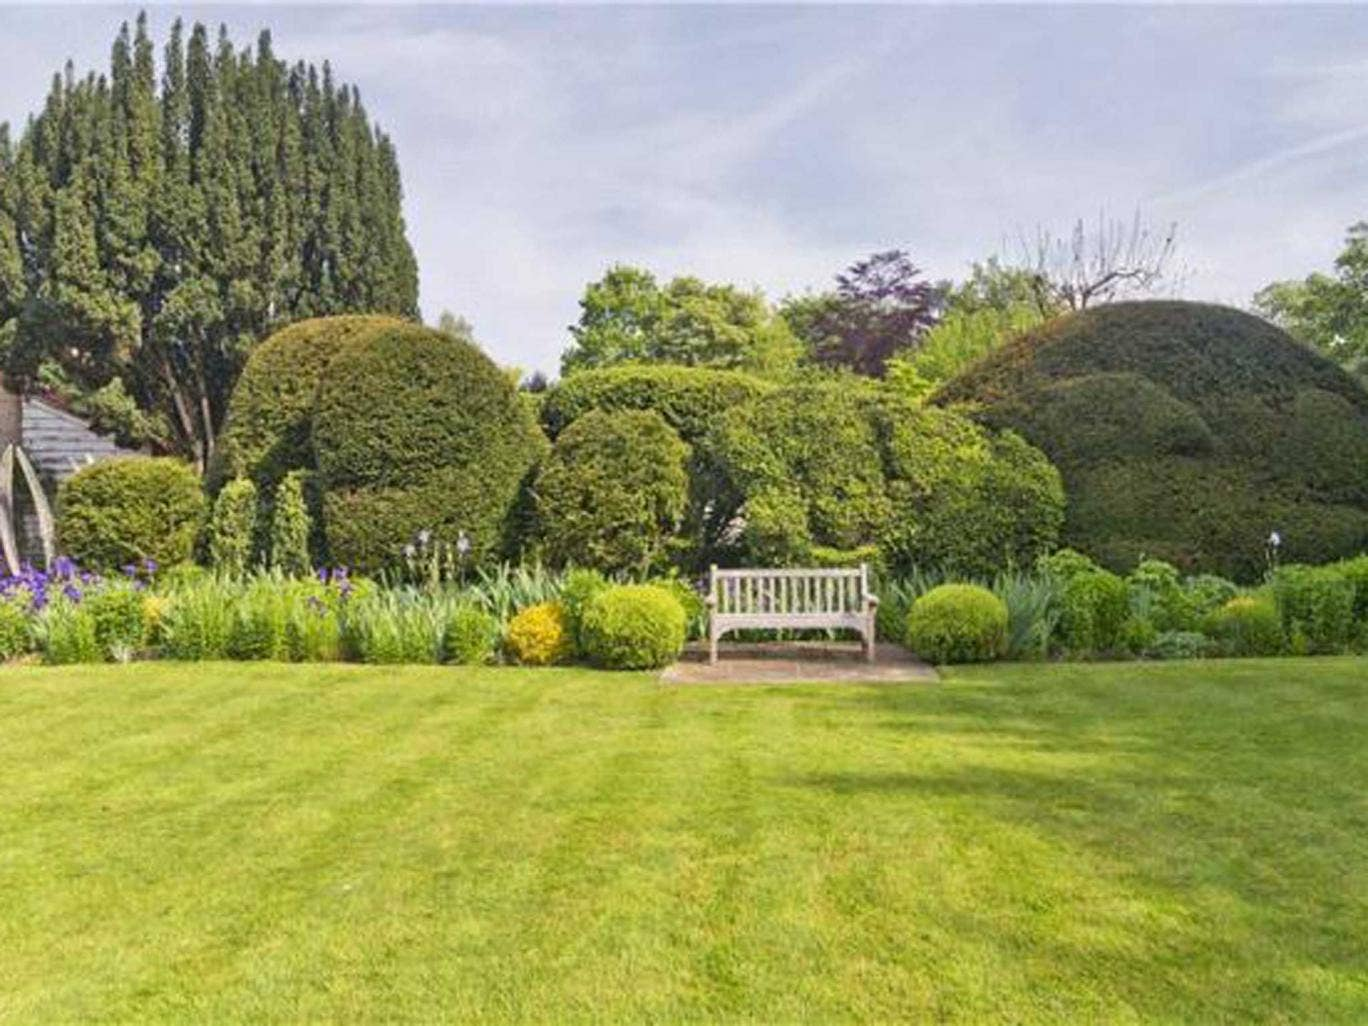 The garden at Kings Mill House, Great Shelford, which inspired 'Tom's Midnight Garden'